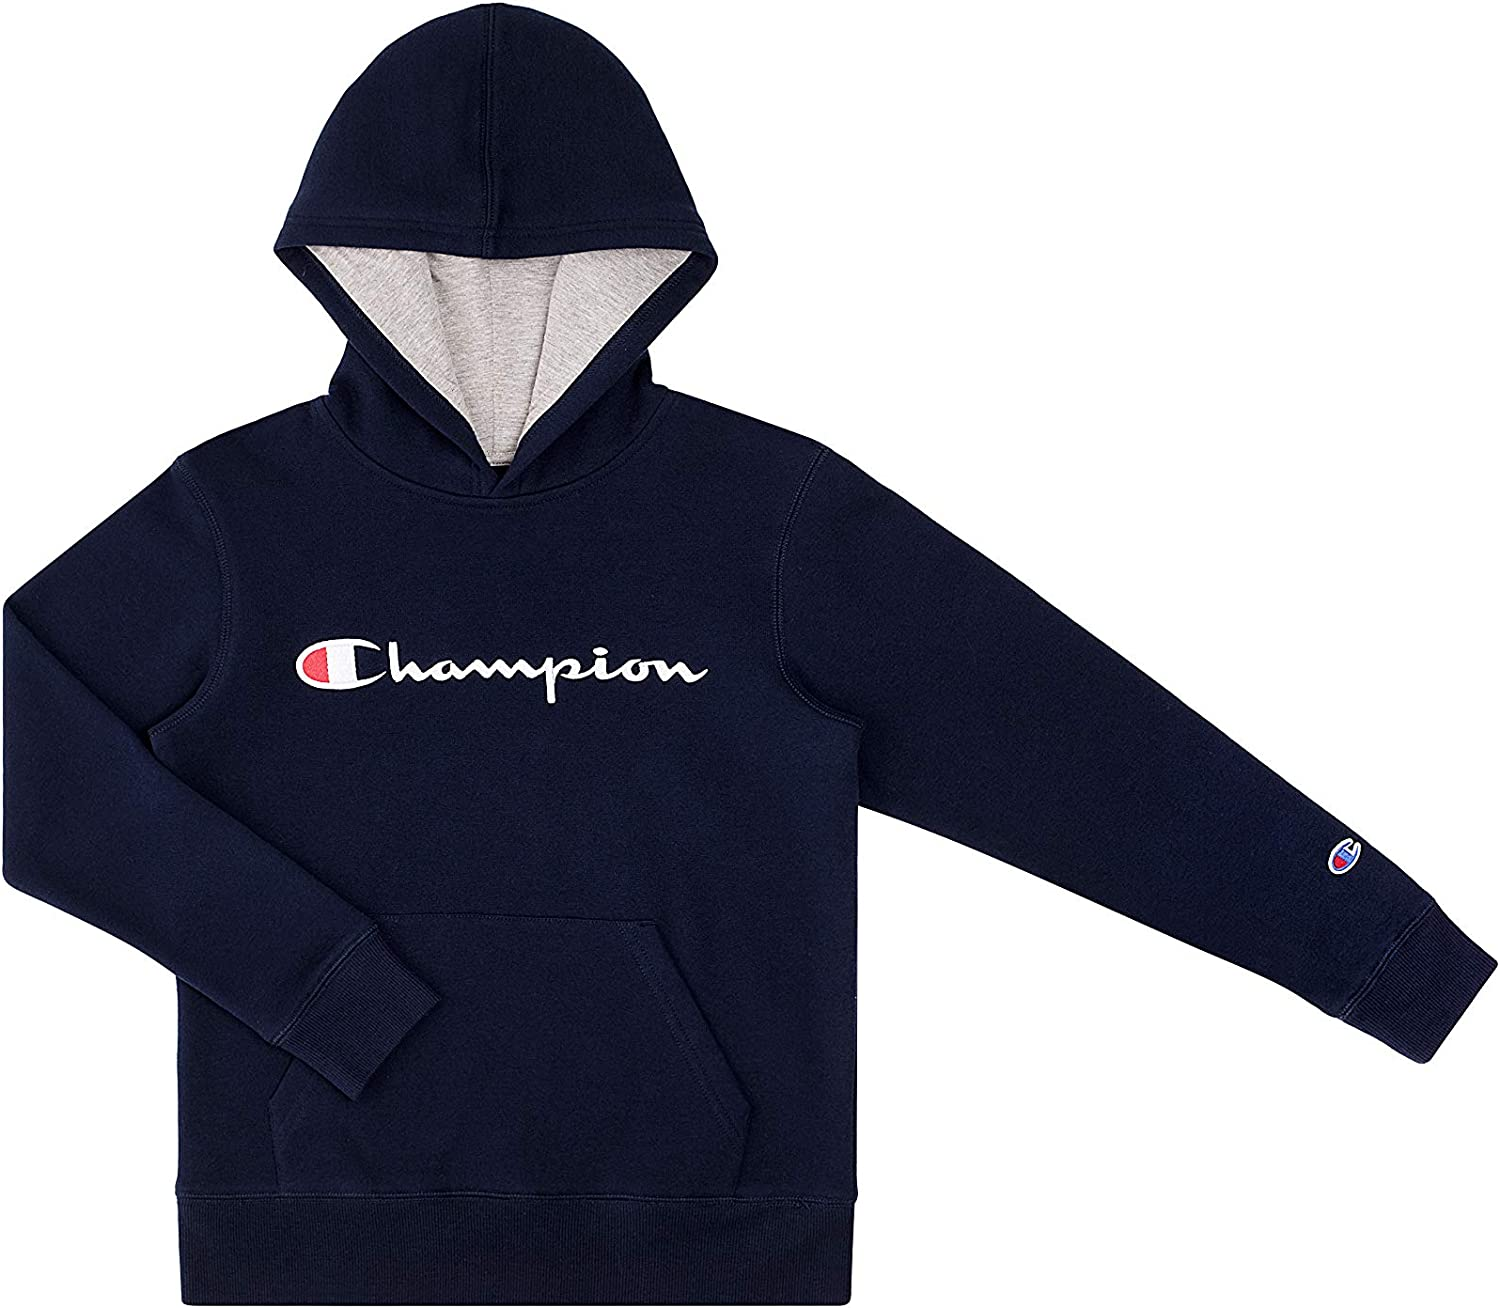 Champion Kids Clothes Sweatshirts Boys Youth Heritage Fleece